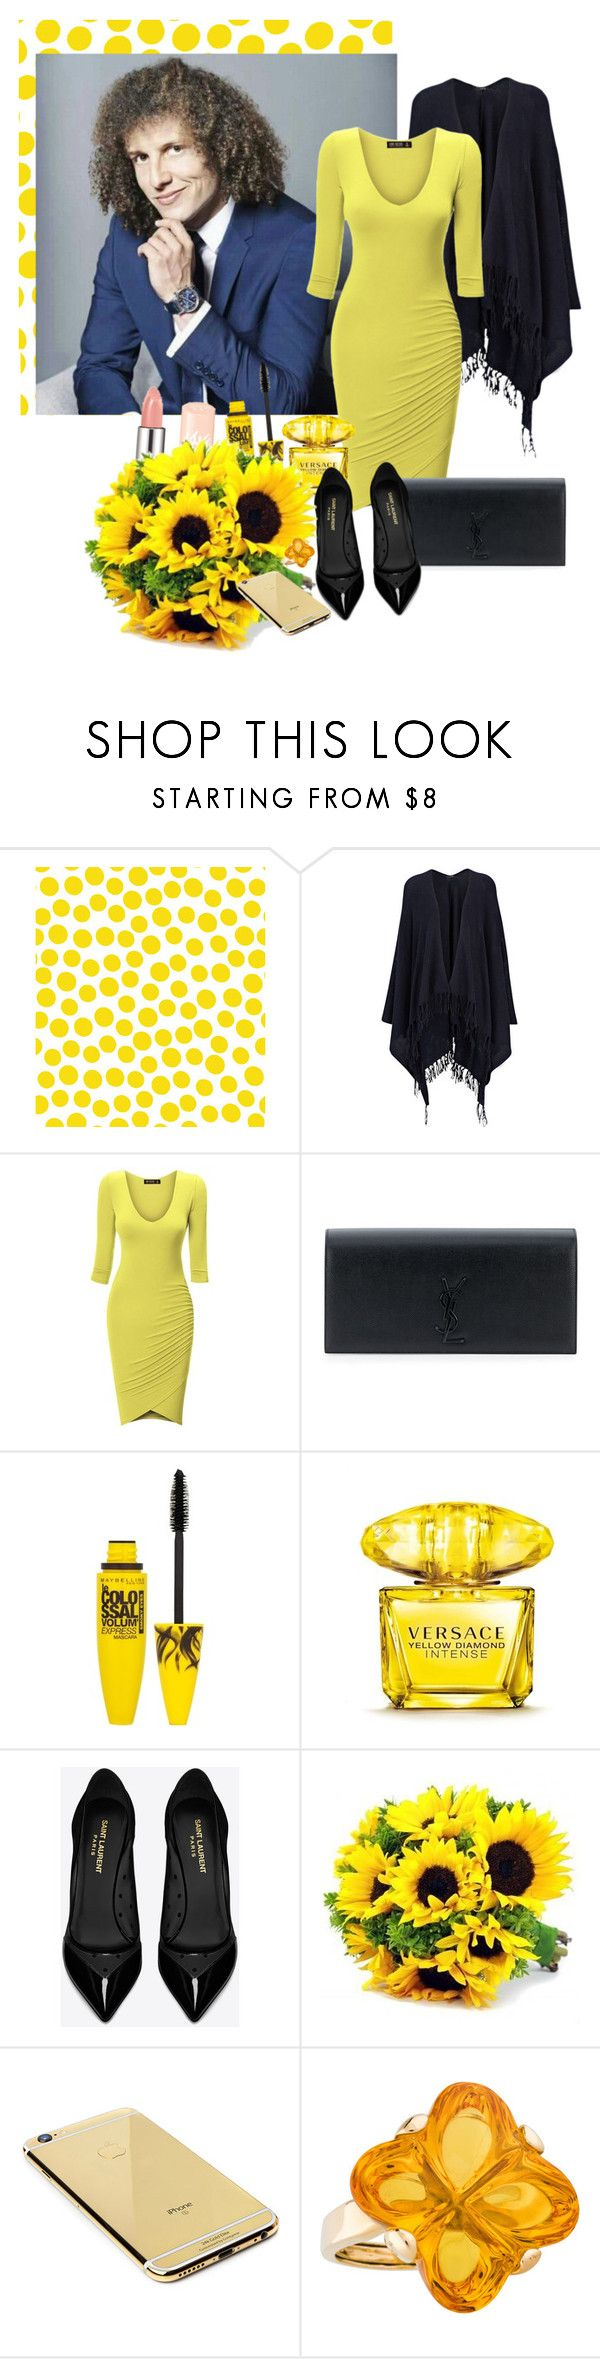 """""""David Luiz"""" by bokilly91 ❤ liked on Polyvore featuring Jennifer Paganelli, Joseph, Yves Saint Laurent, Maybelline, Versace, Goldgenie and Baccarat"""